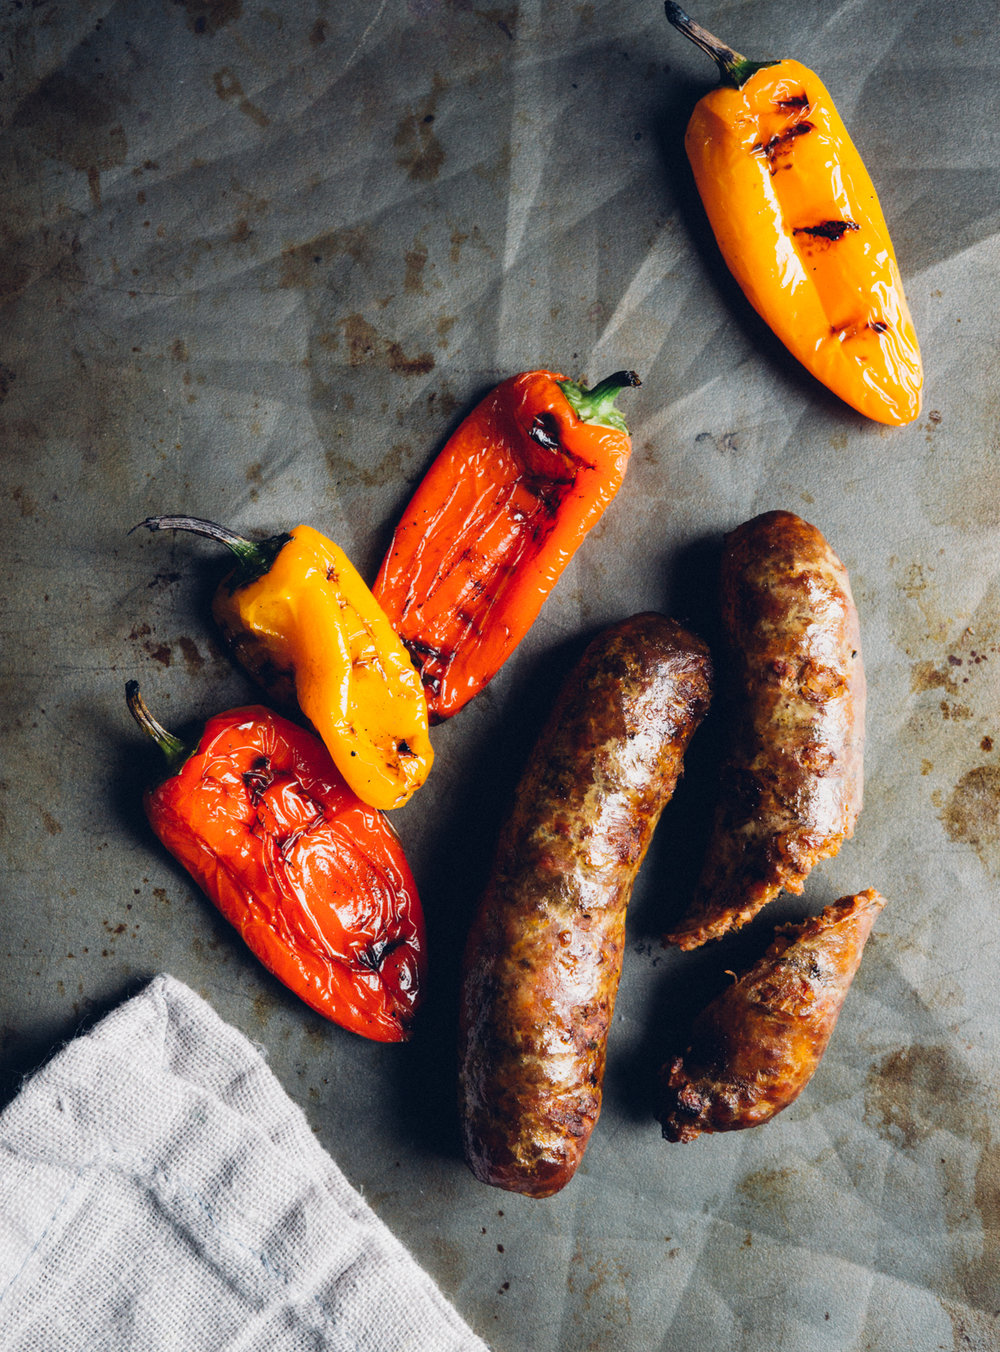 Pork Chorizo - one of 40 types of artisan, handmade sausages made on the farm and available at BPM. Perfect for grilling.